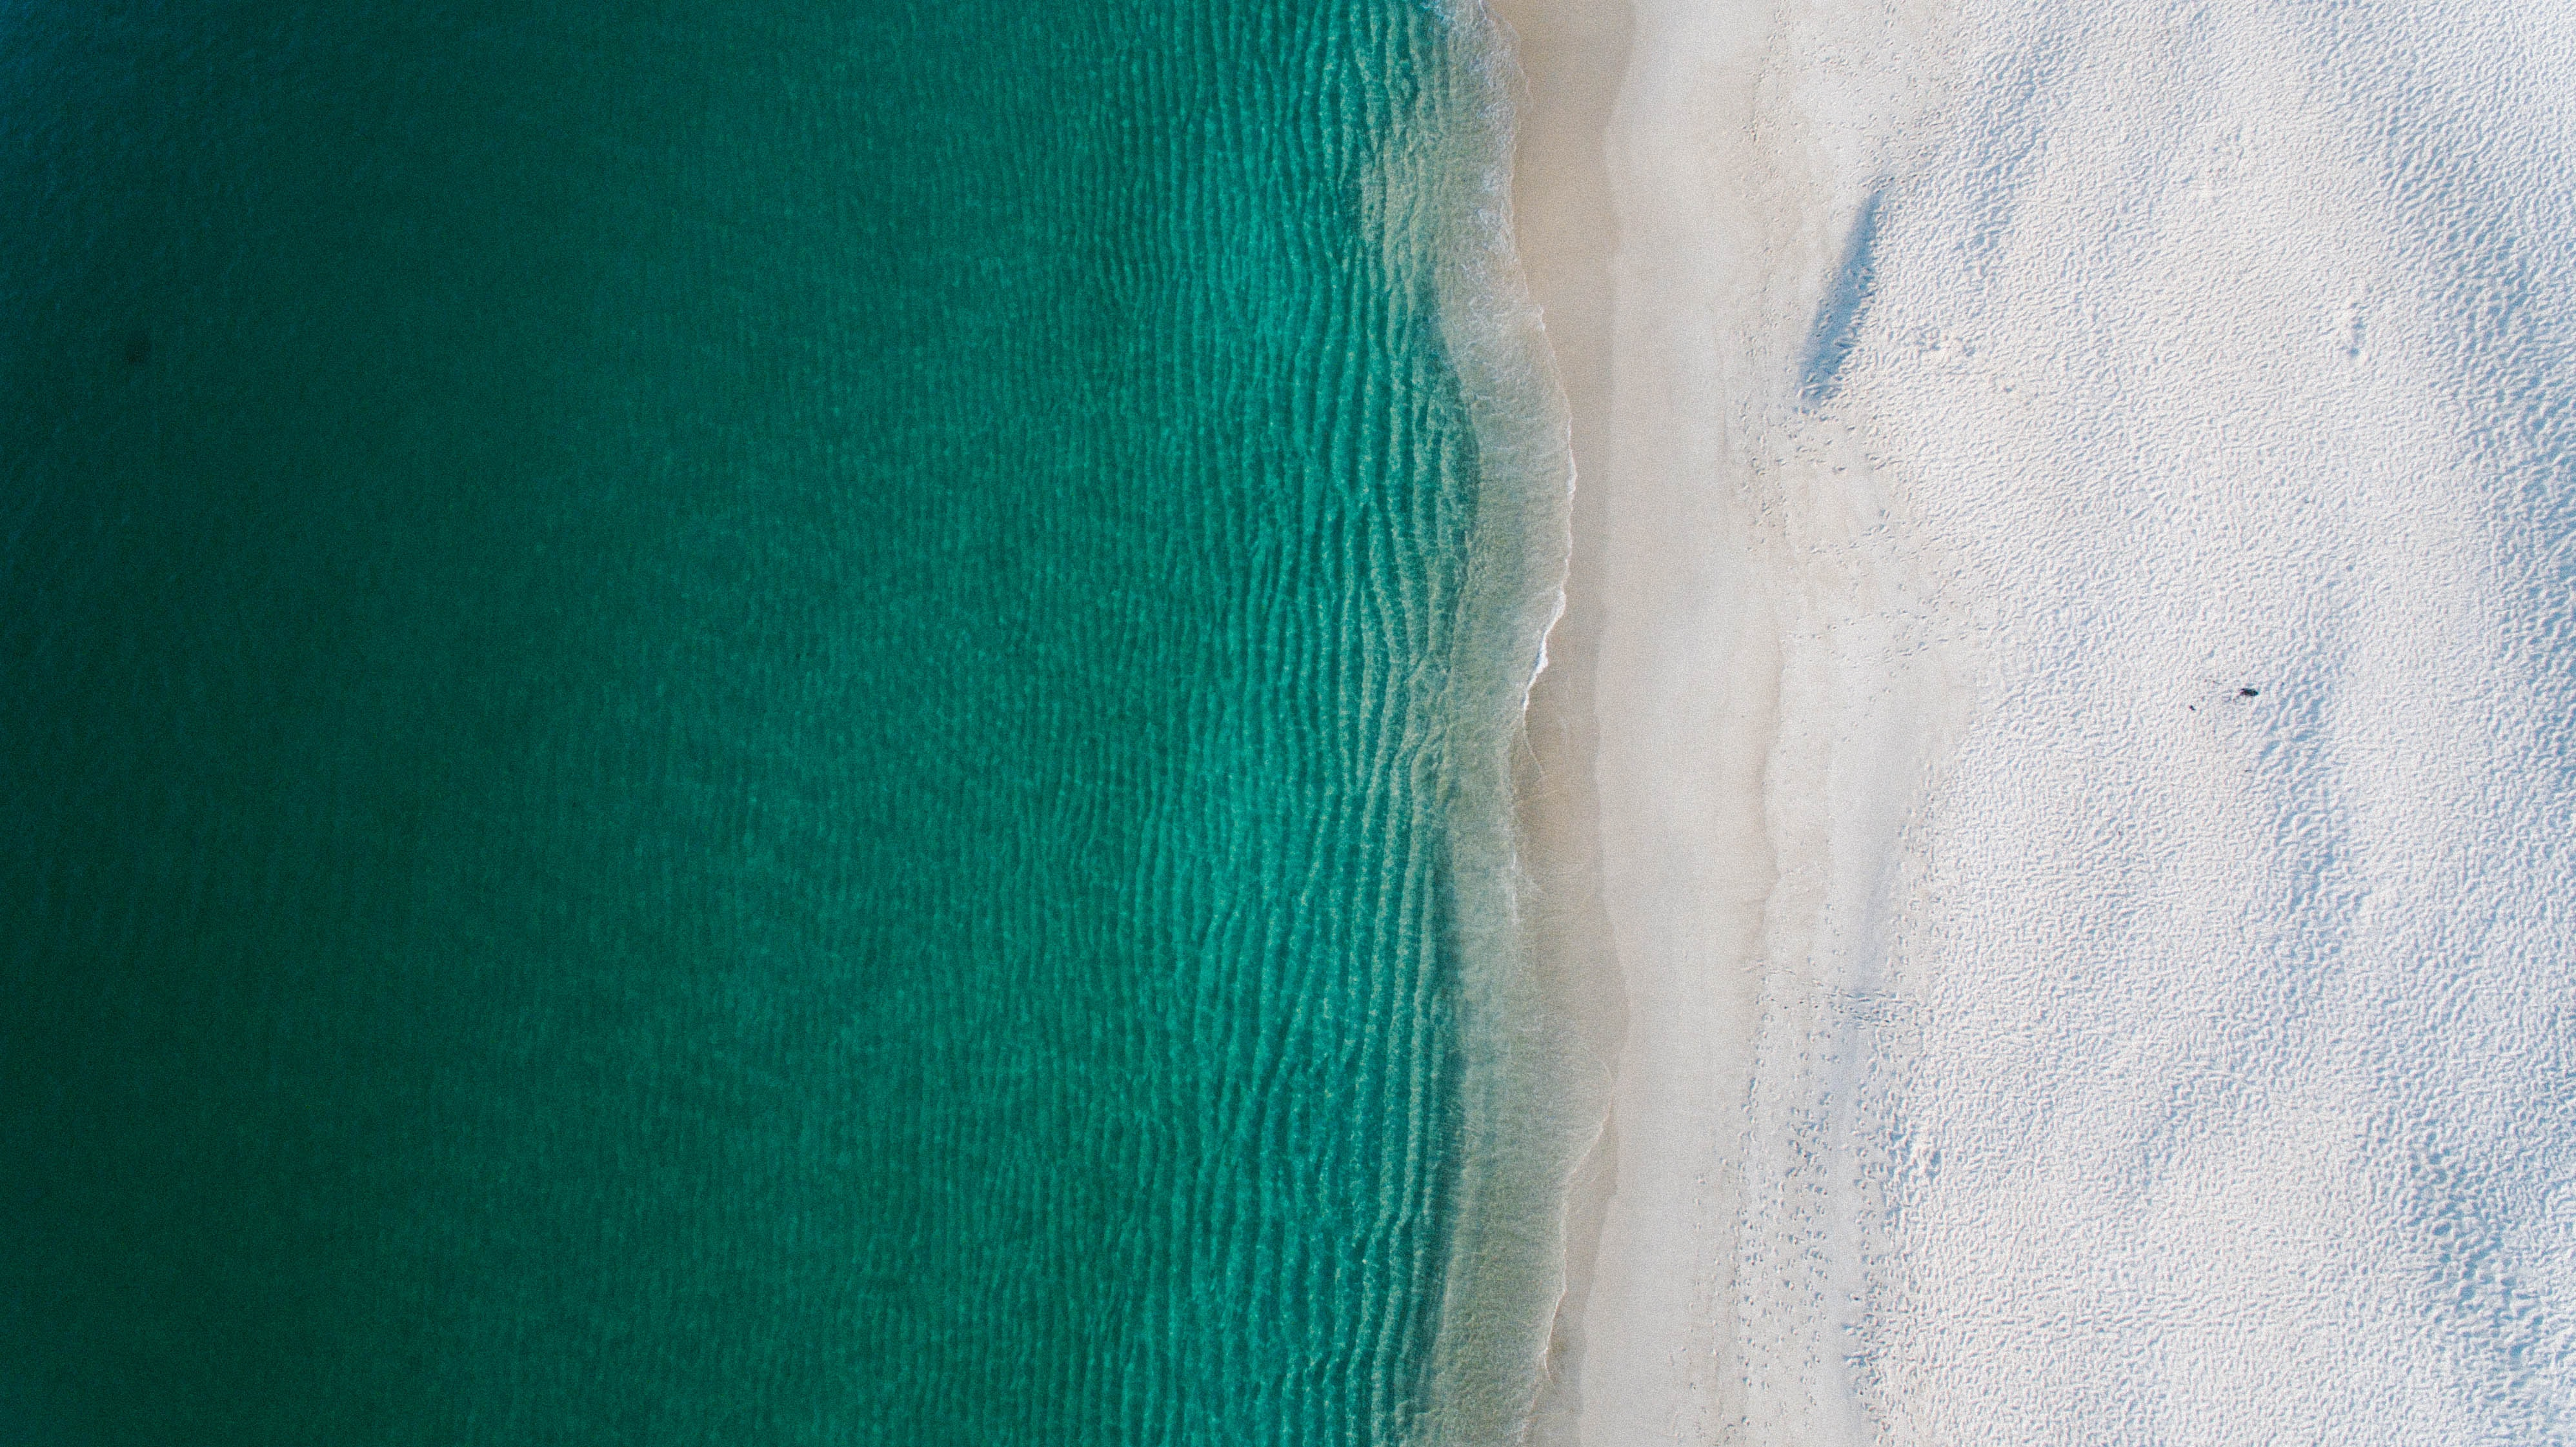 Drone view of a clear ocean washing up on sand shore in Nelson Bay